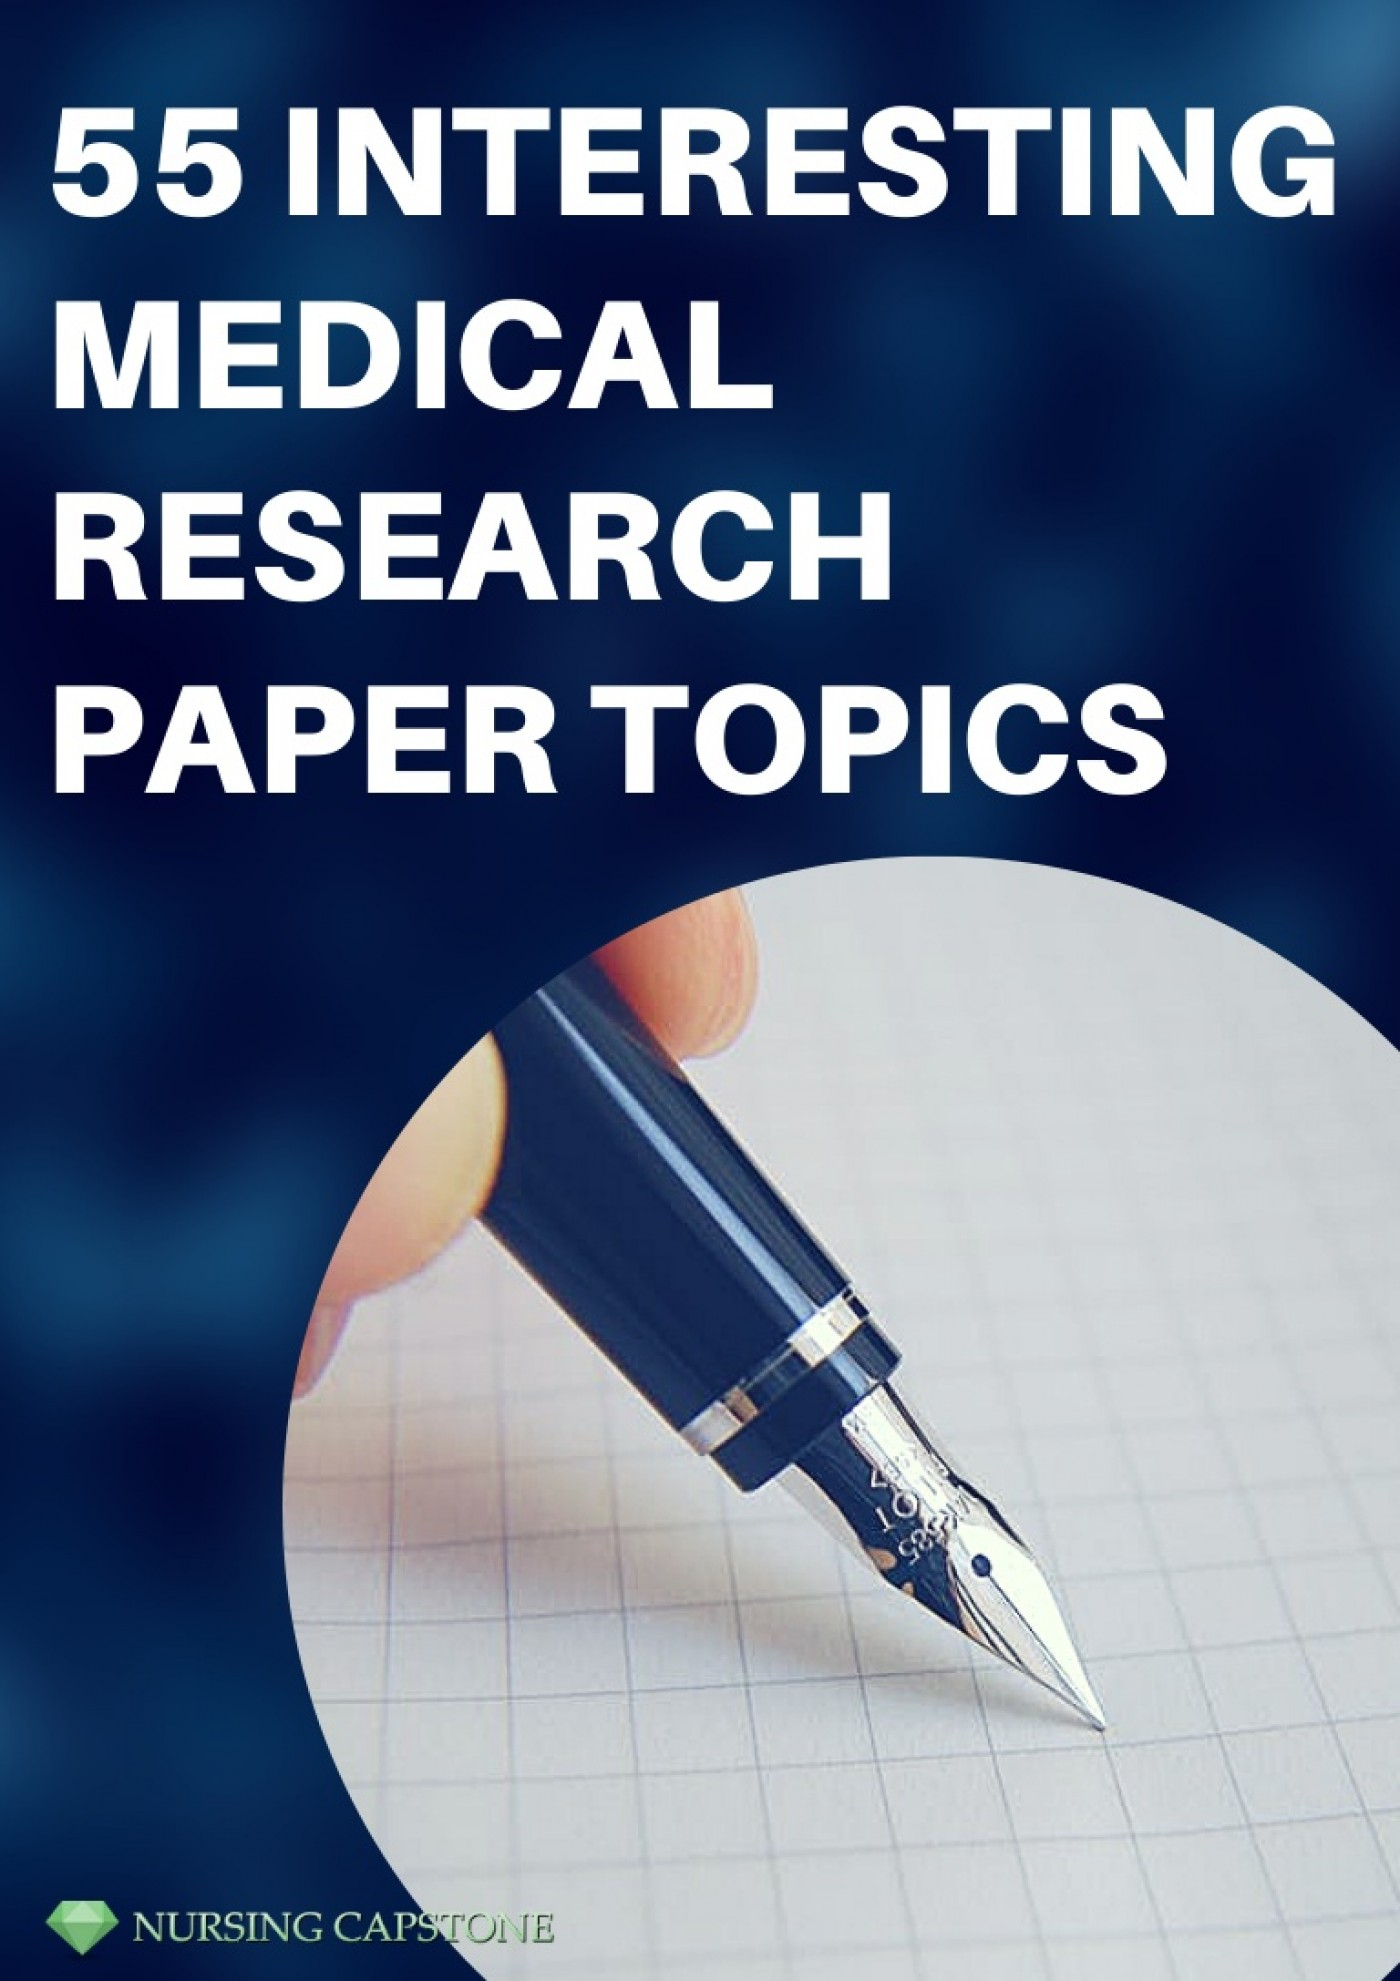 006 Good Medical Research Paper Topics Thumbnail Stupendous Best Ethics For High School Students 1400